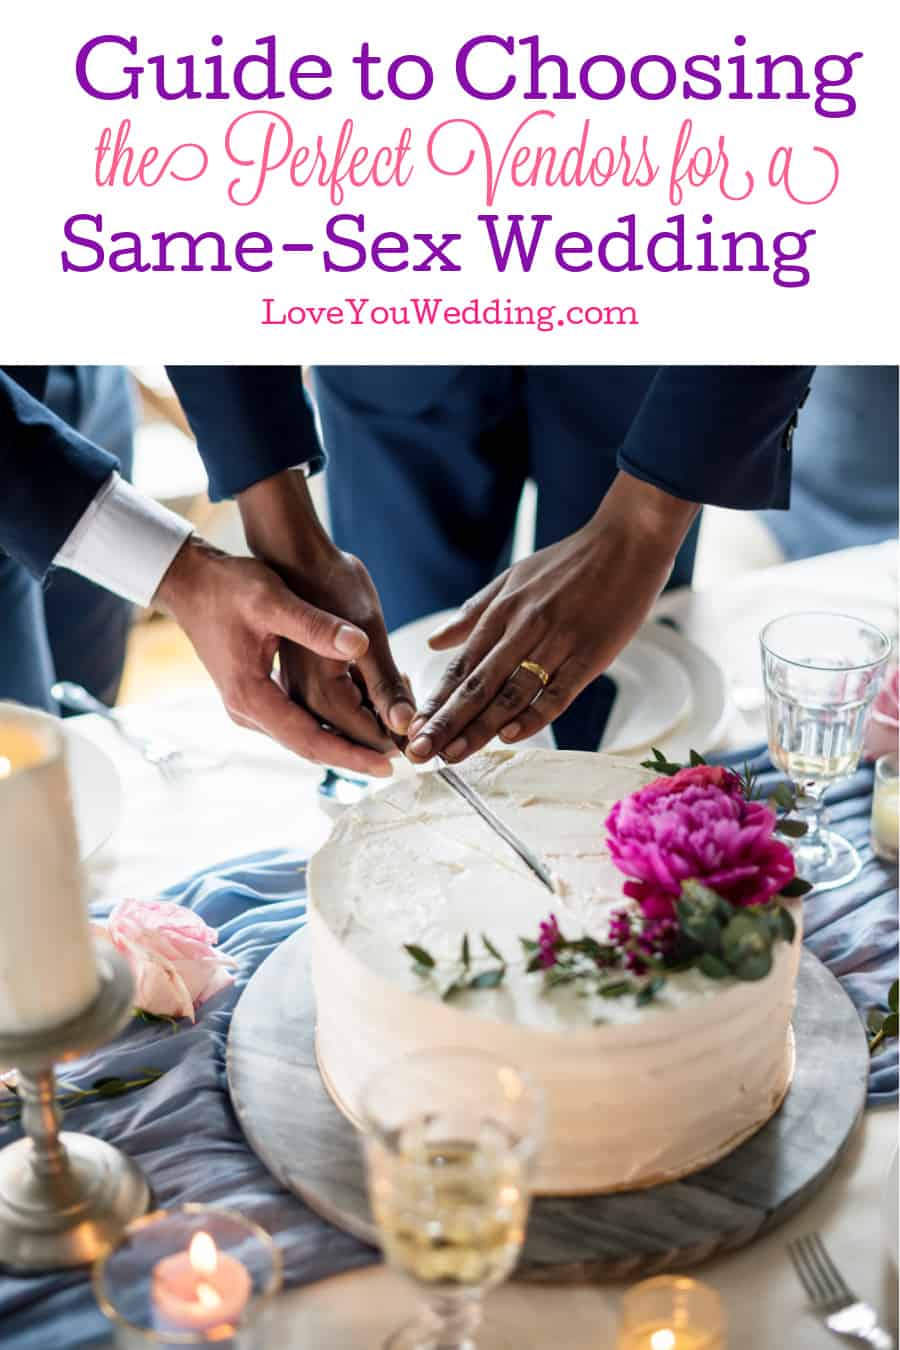 Need some help choosing LGBT-friendly wedding vendors? Check out our guide with all the essentials to finding the right people to make your big day special.